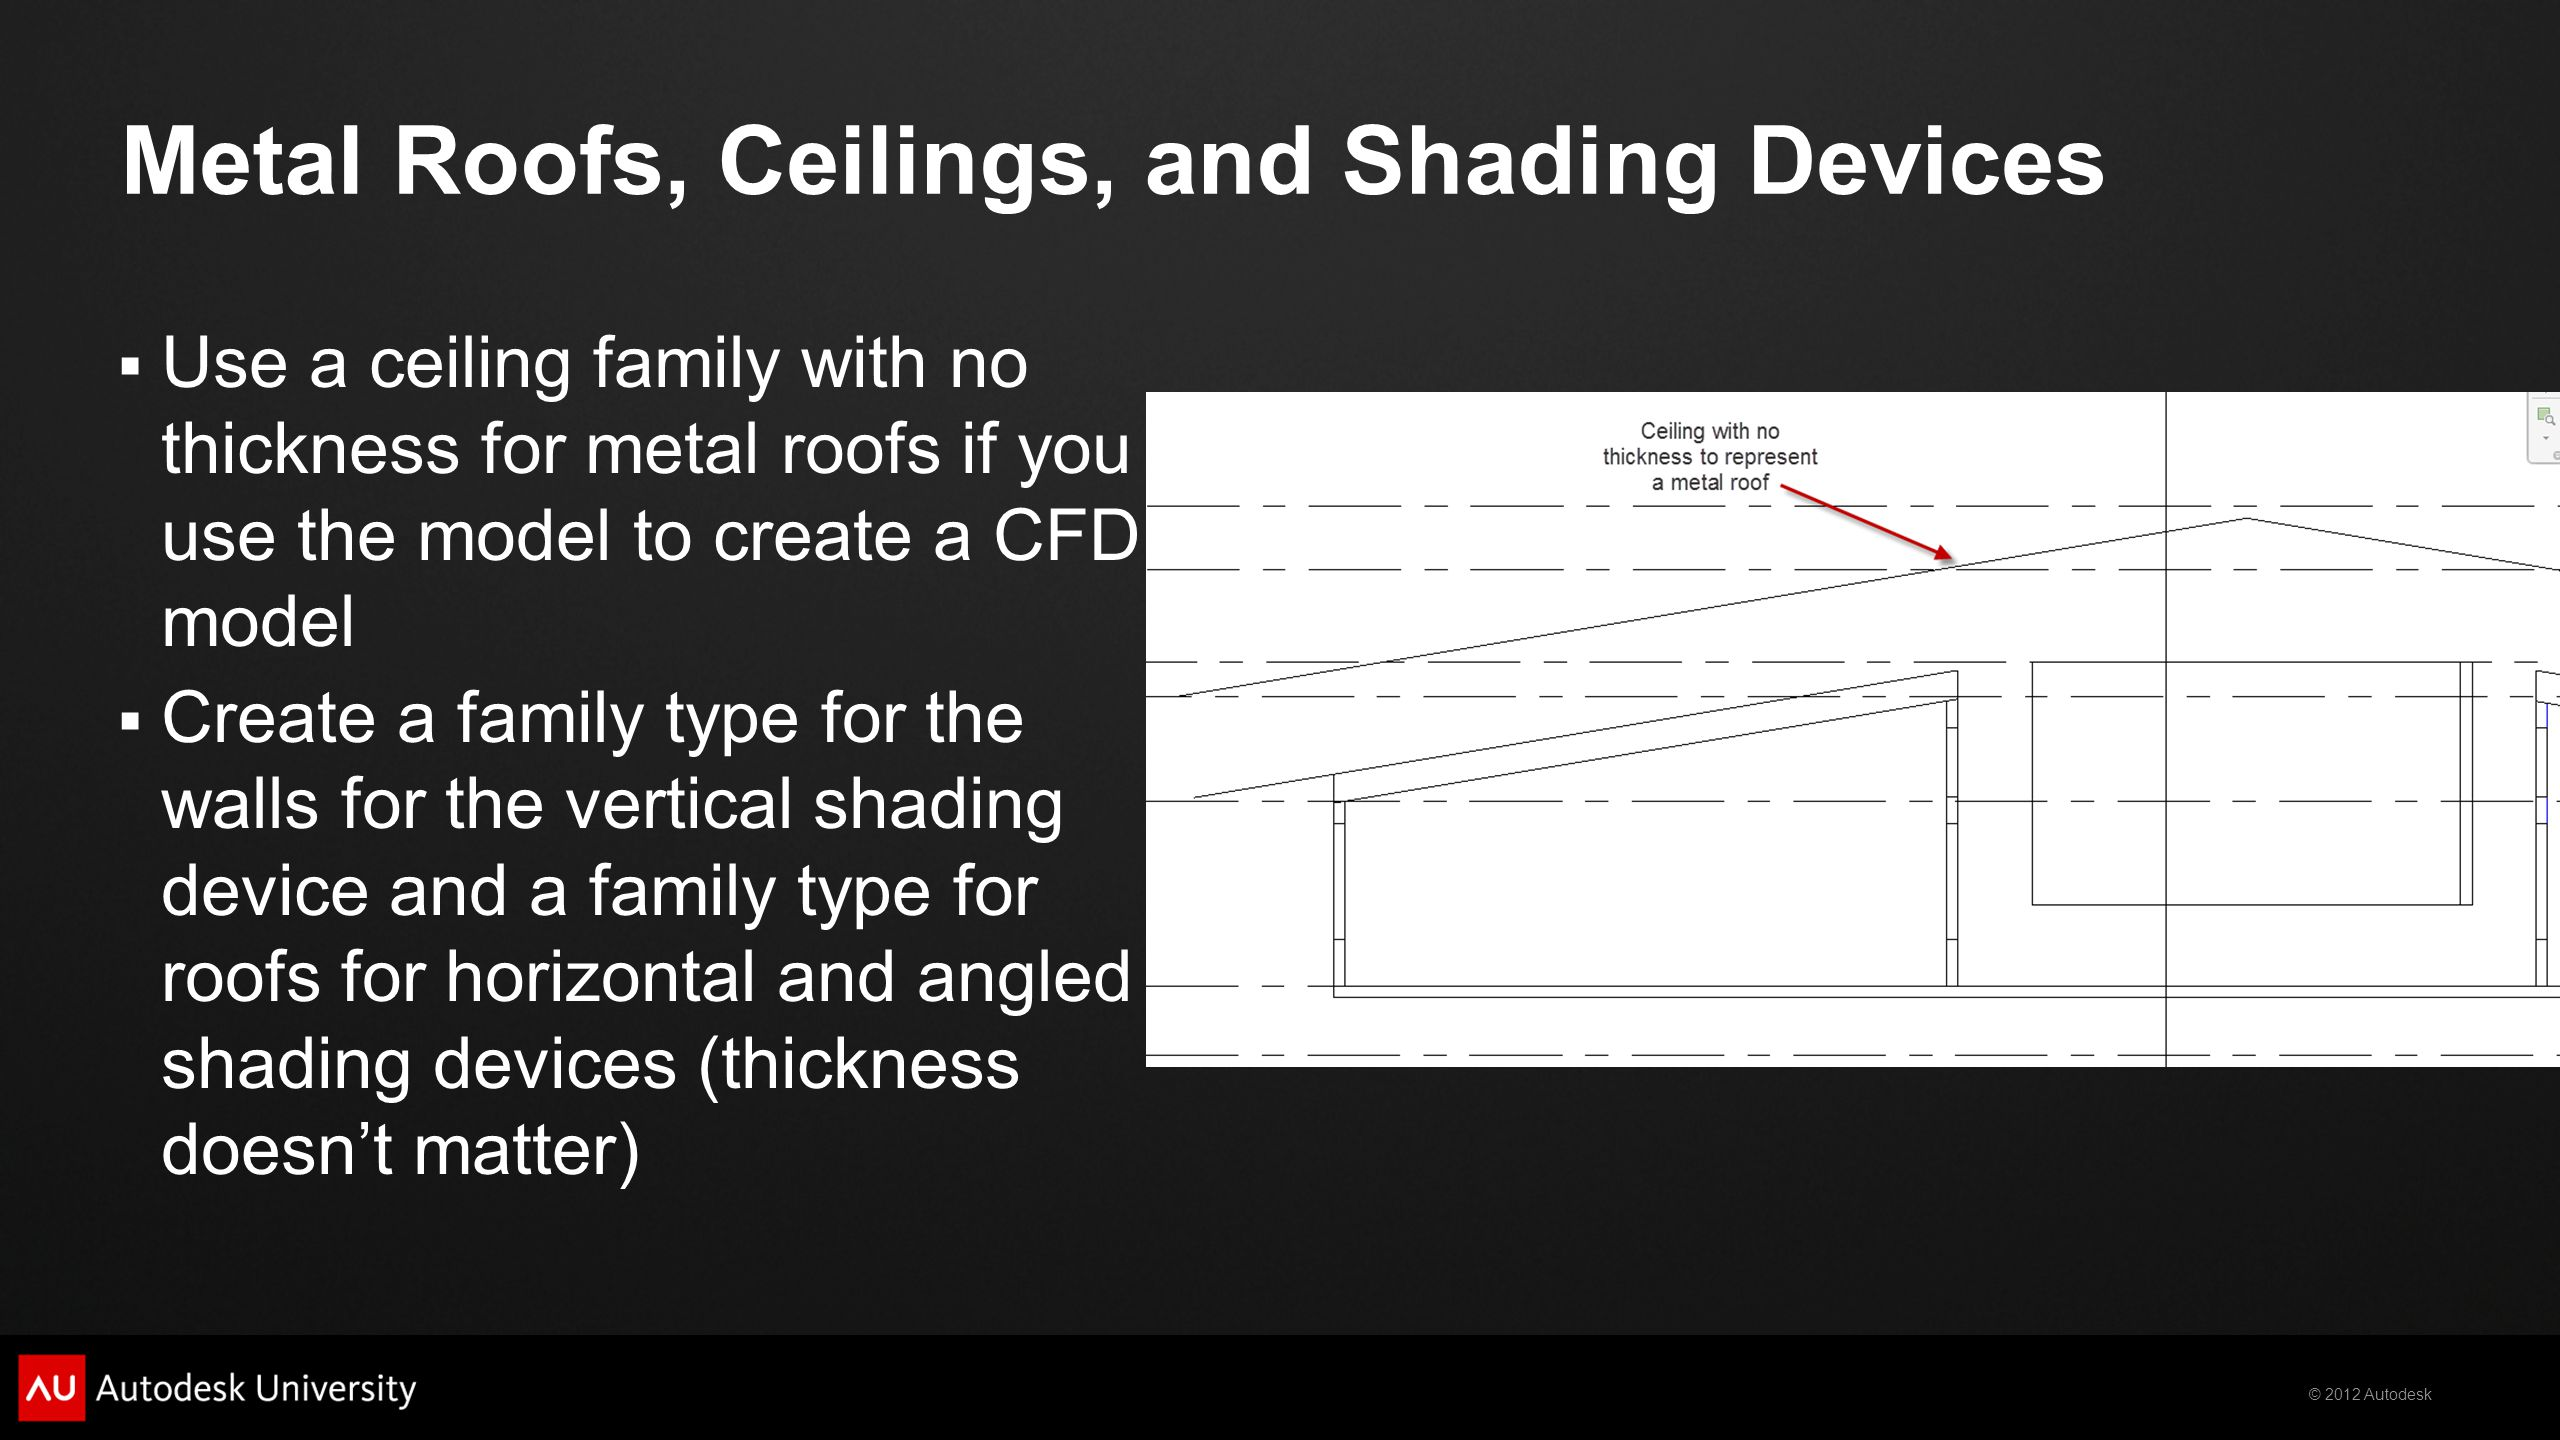 Metal Roofs, Ceilings, and Shading Devices